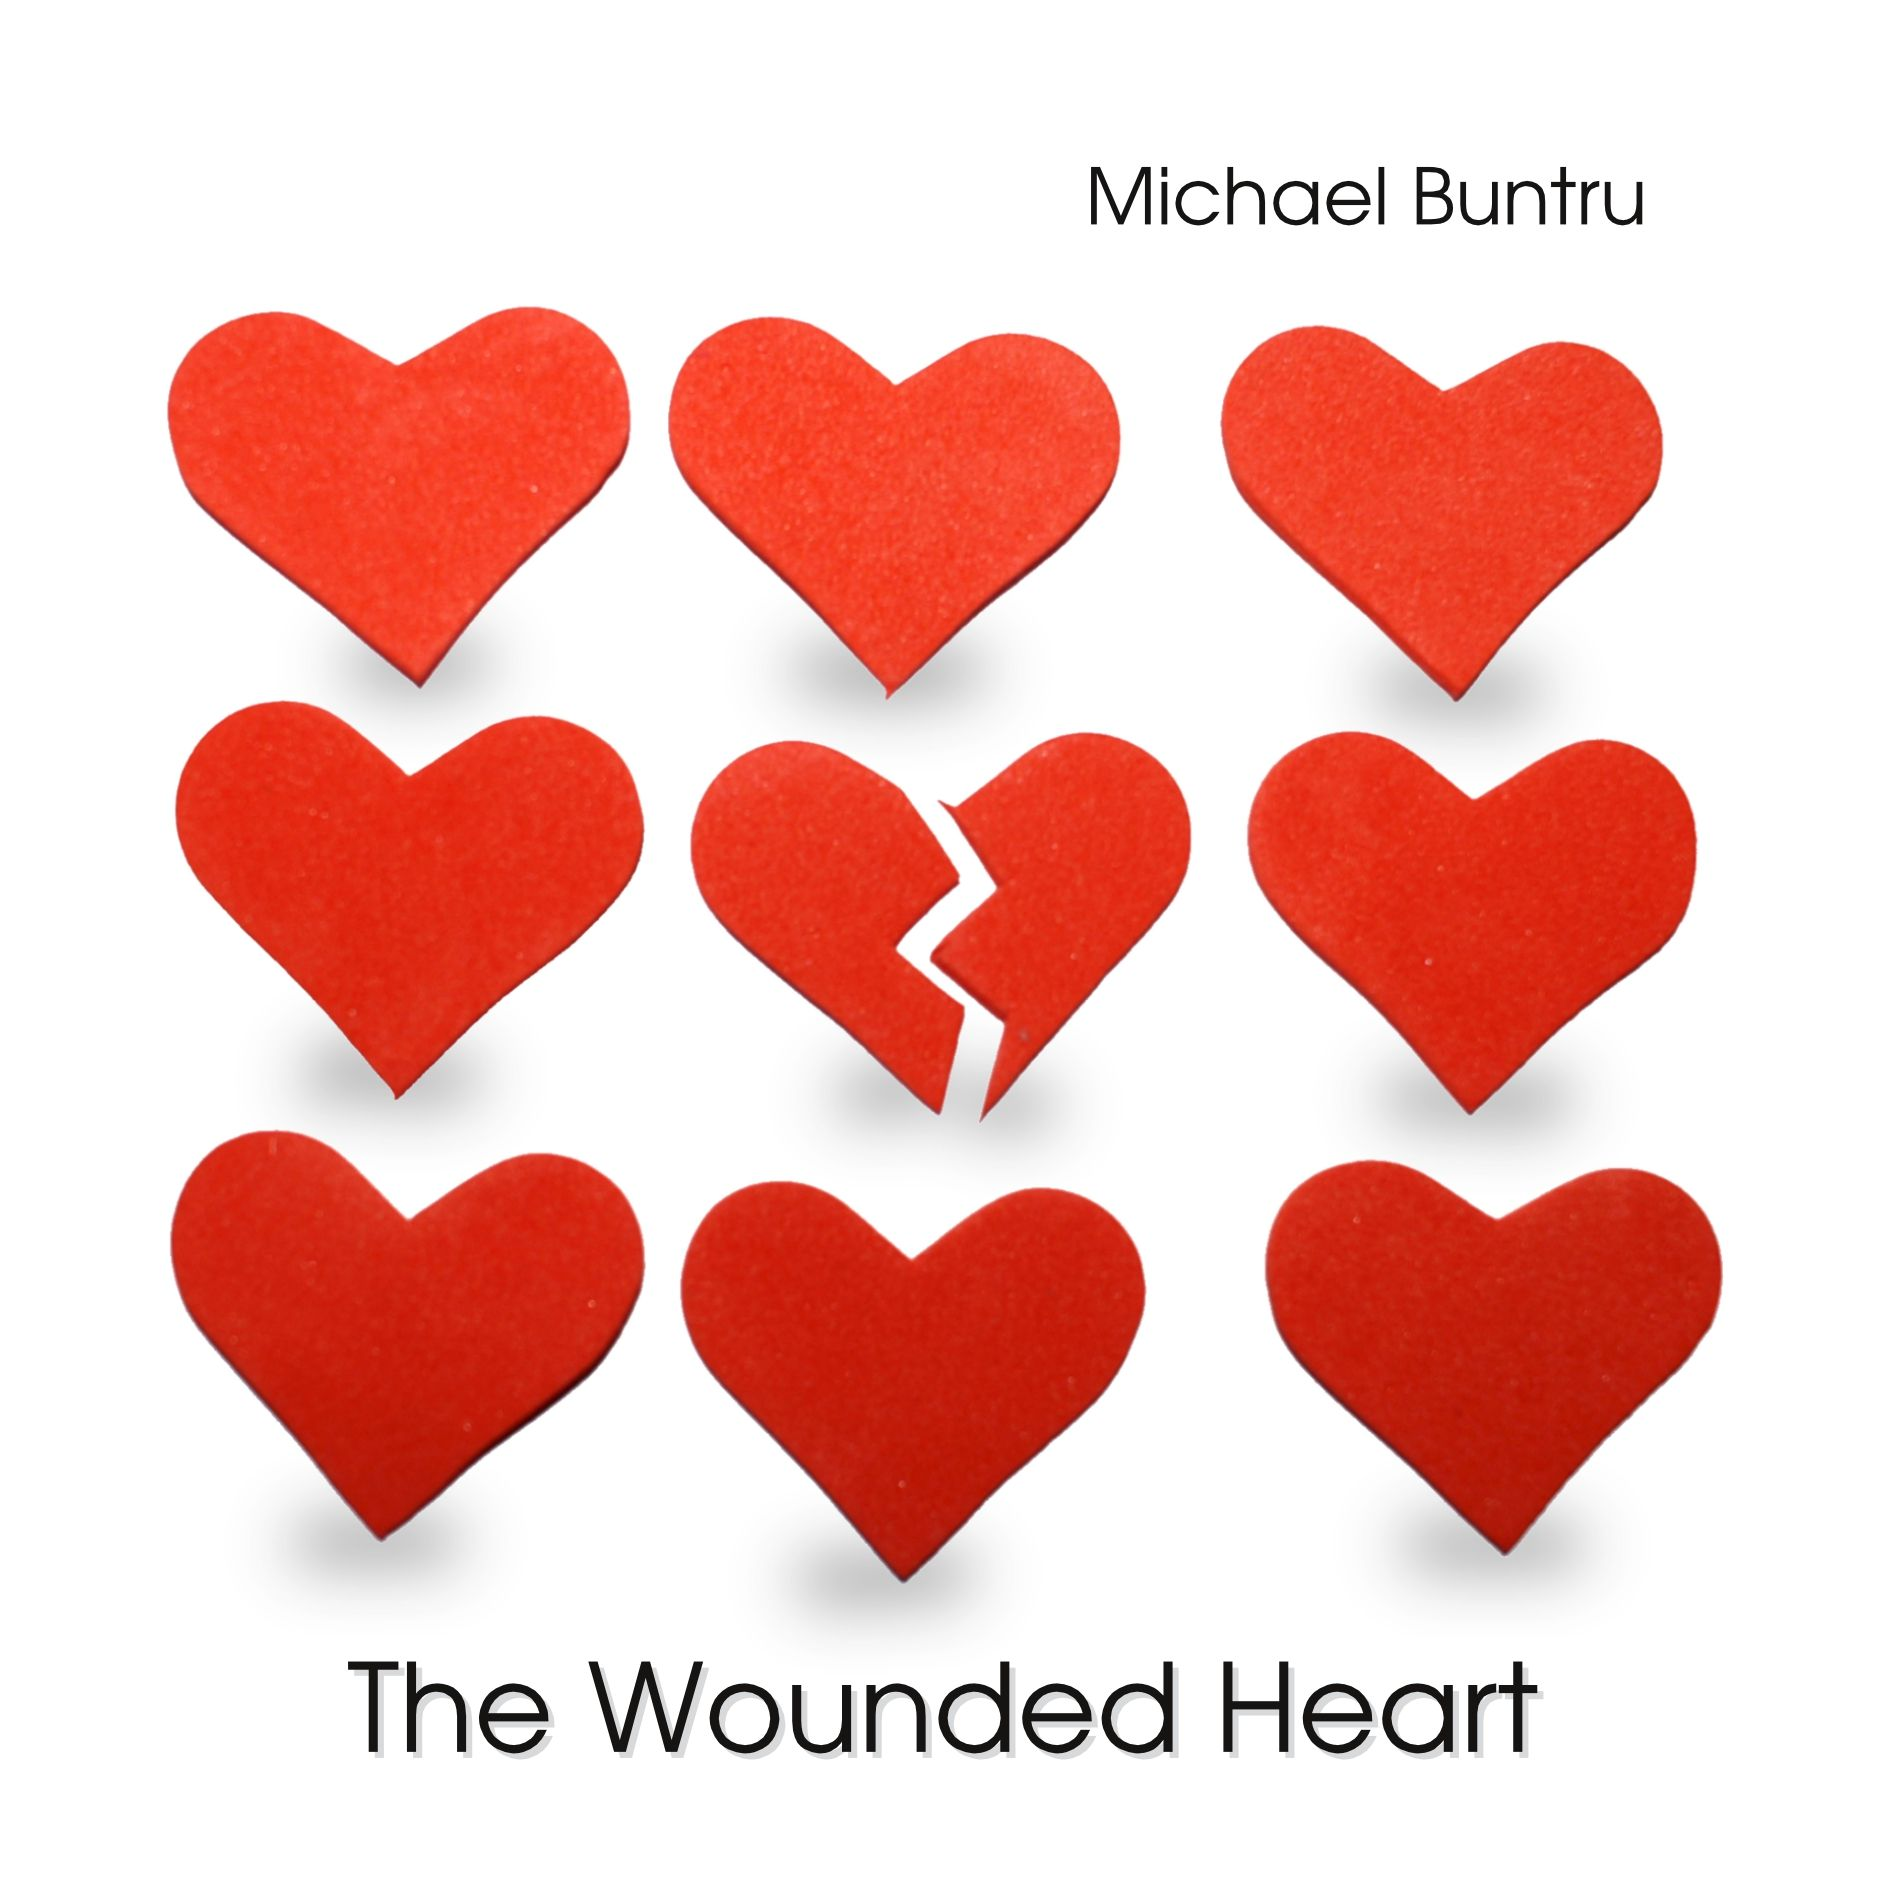 The Wounded Heart-2015-72dpi